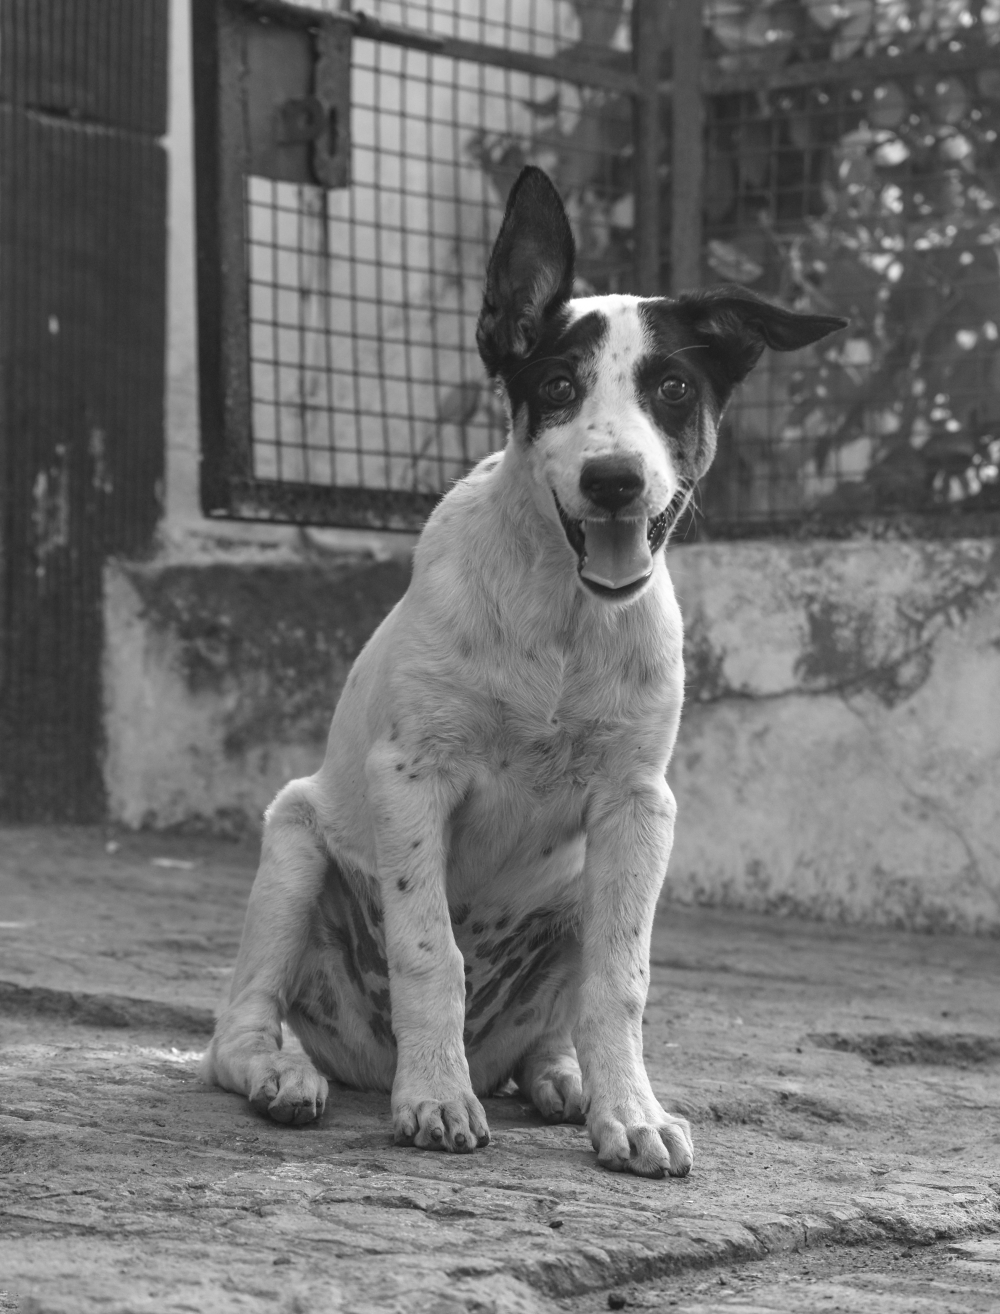 black and white puppy, happy, puppy, Cute puppy, Animal, Photography, dog, Animal, smile,